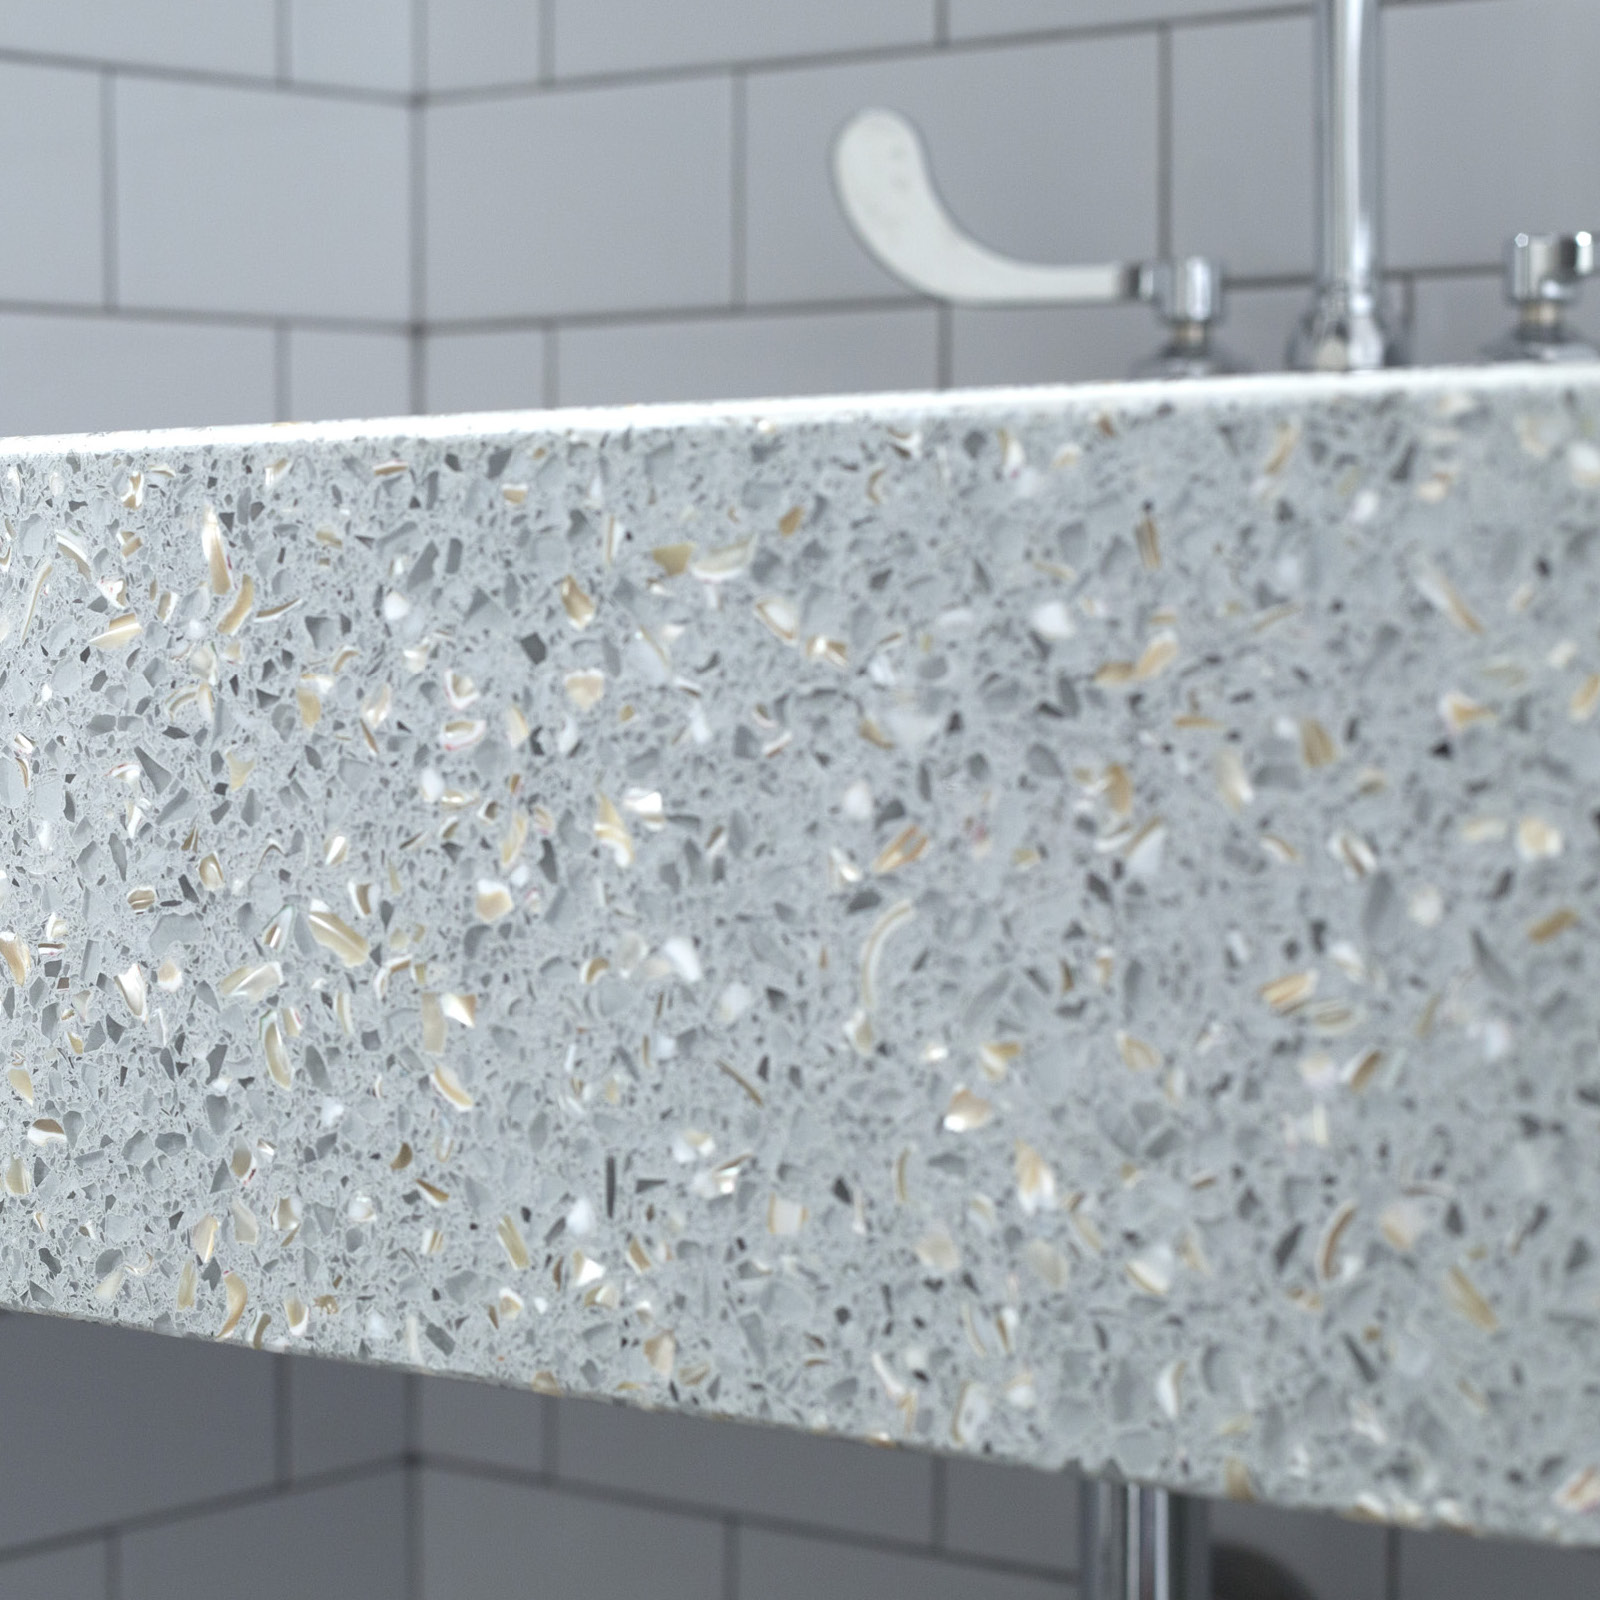 Recycled Countertops Recycle Glass Icestone Countertops Stone Surfaces